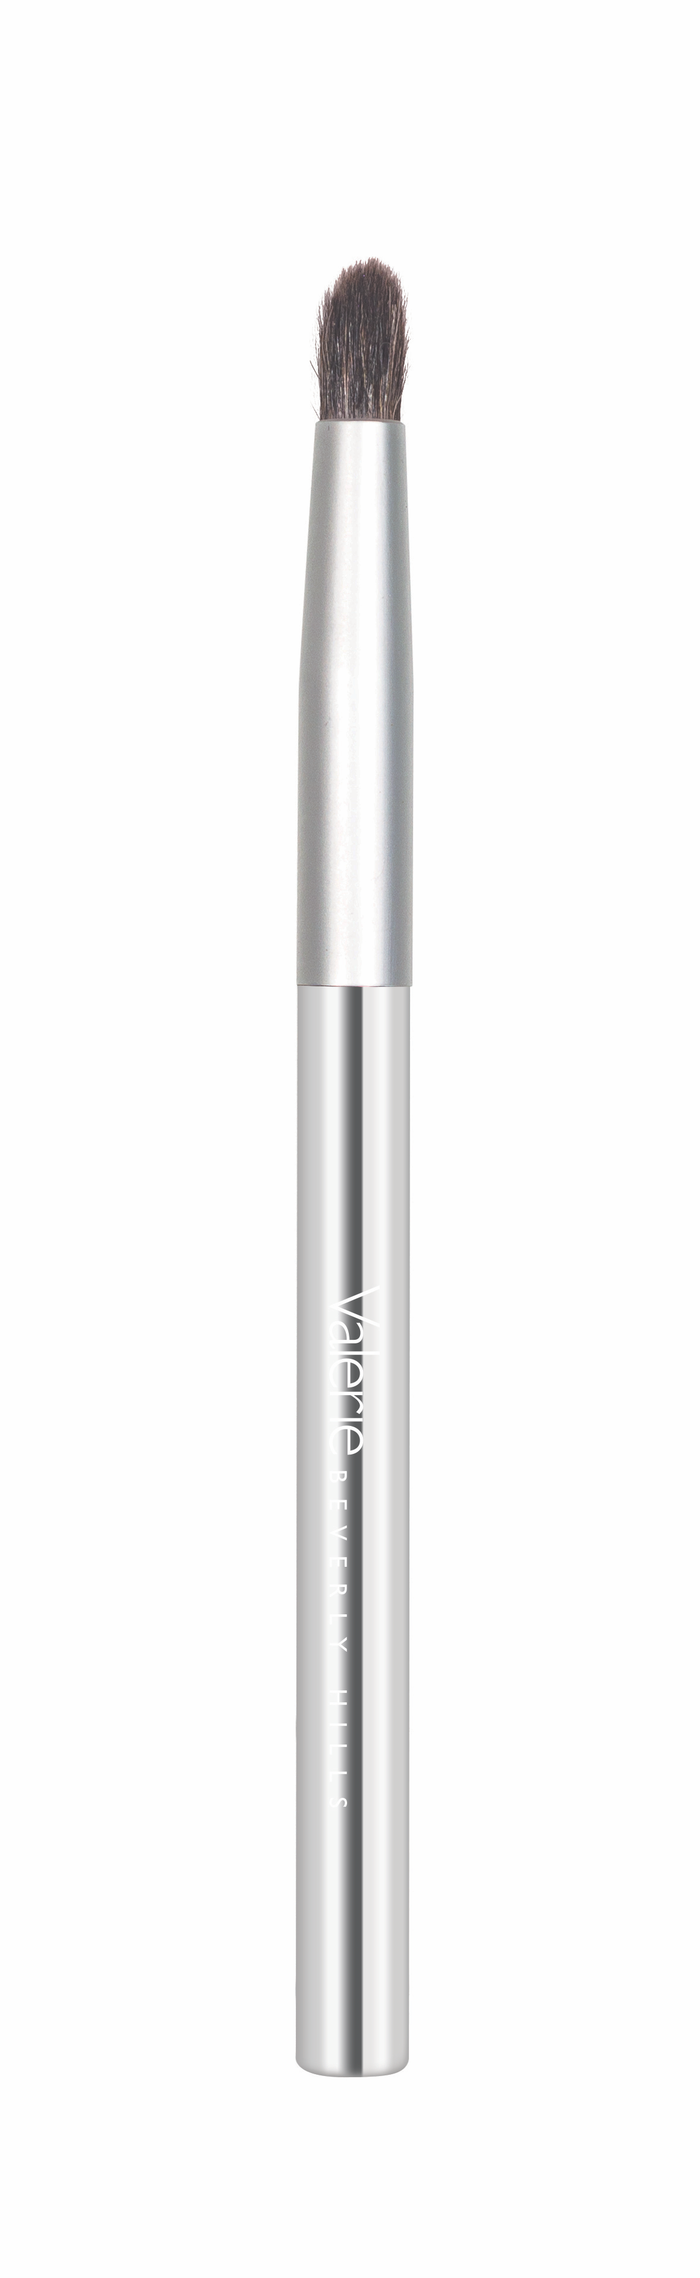 # 11 Blue Squirrel Detailer Eyeshadow Brush